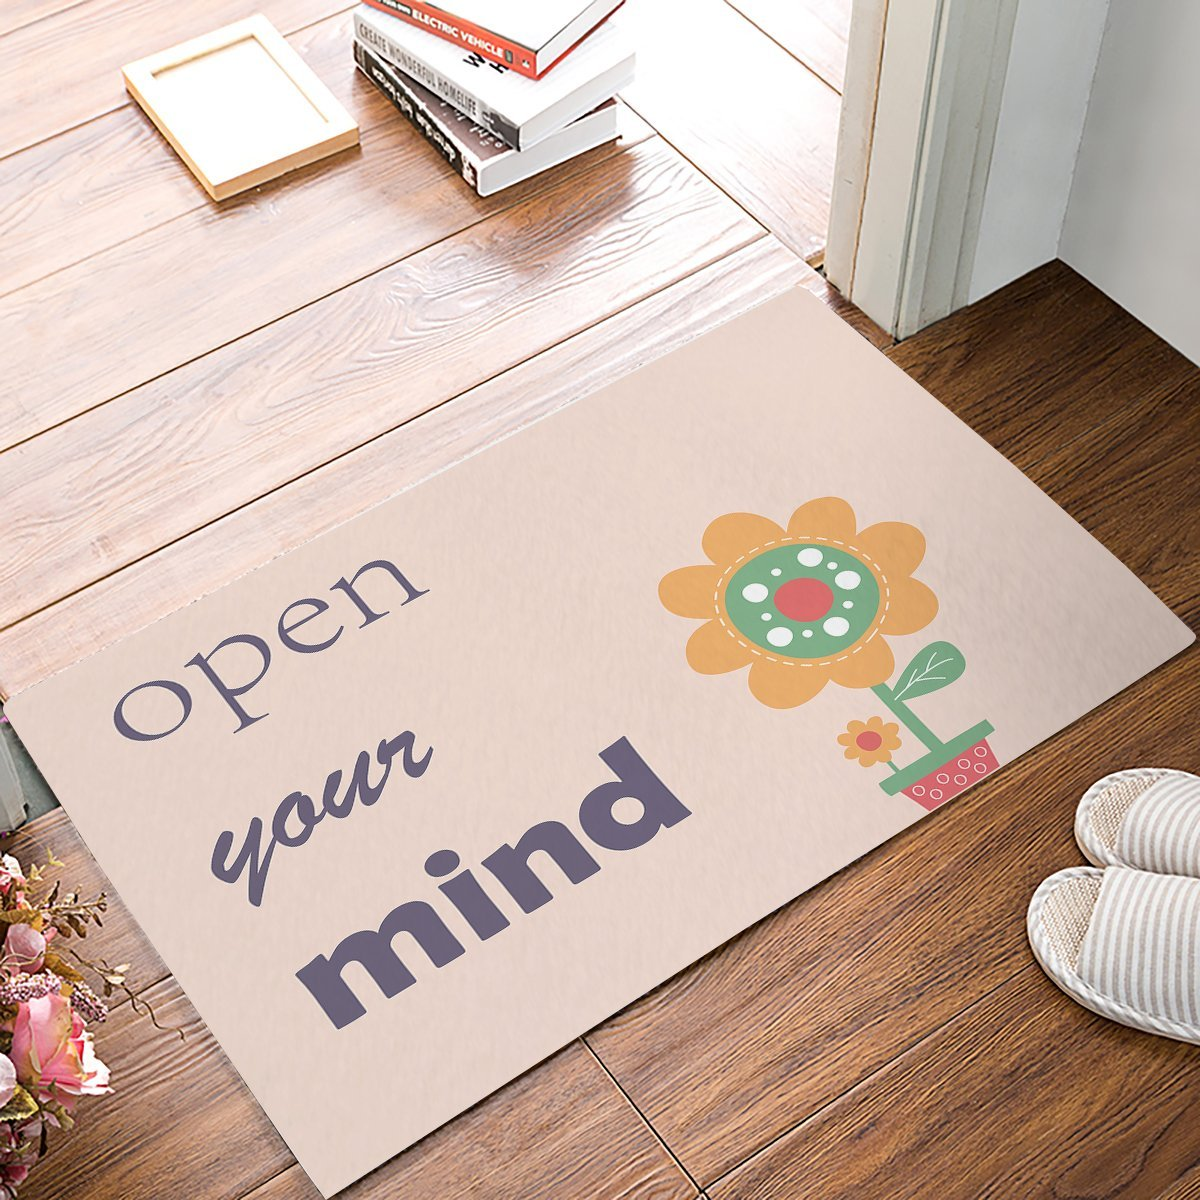 Open Your Mind - Small Potted Plant Sunflower Door Mats Kitchen Floor Bath Entrance Rug Mat Absorbent Indoor Bathroom